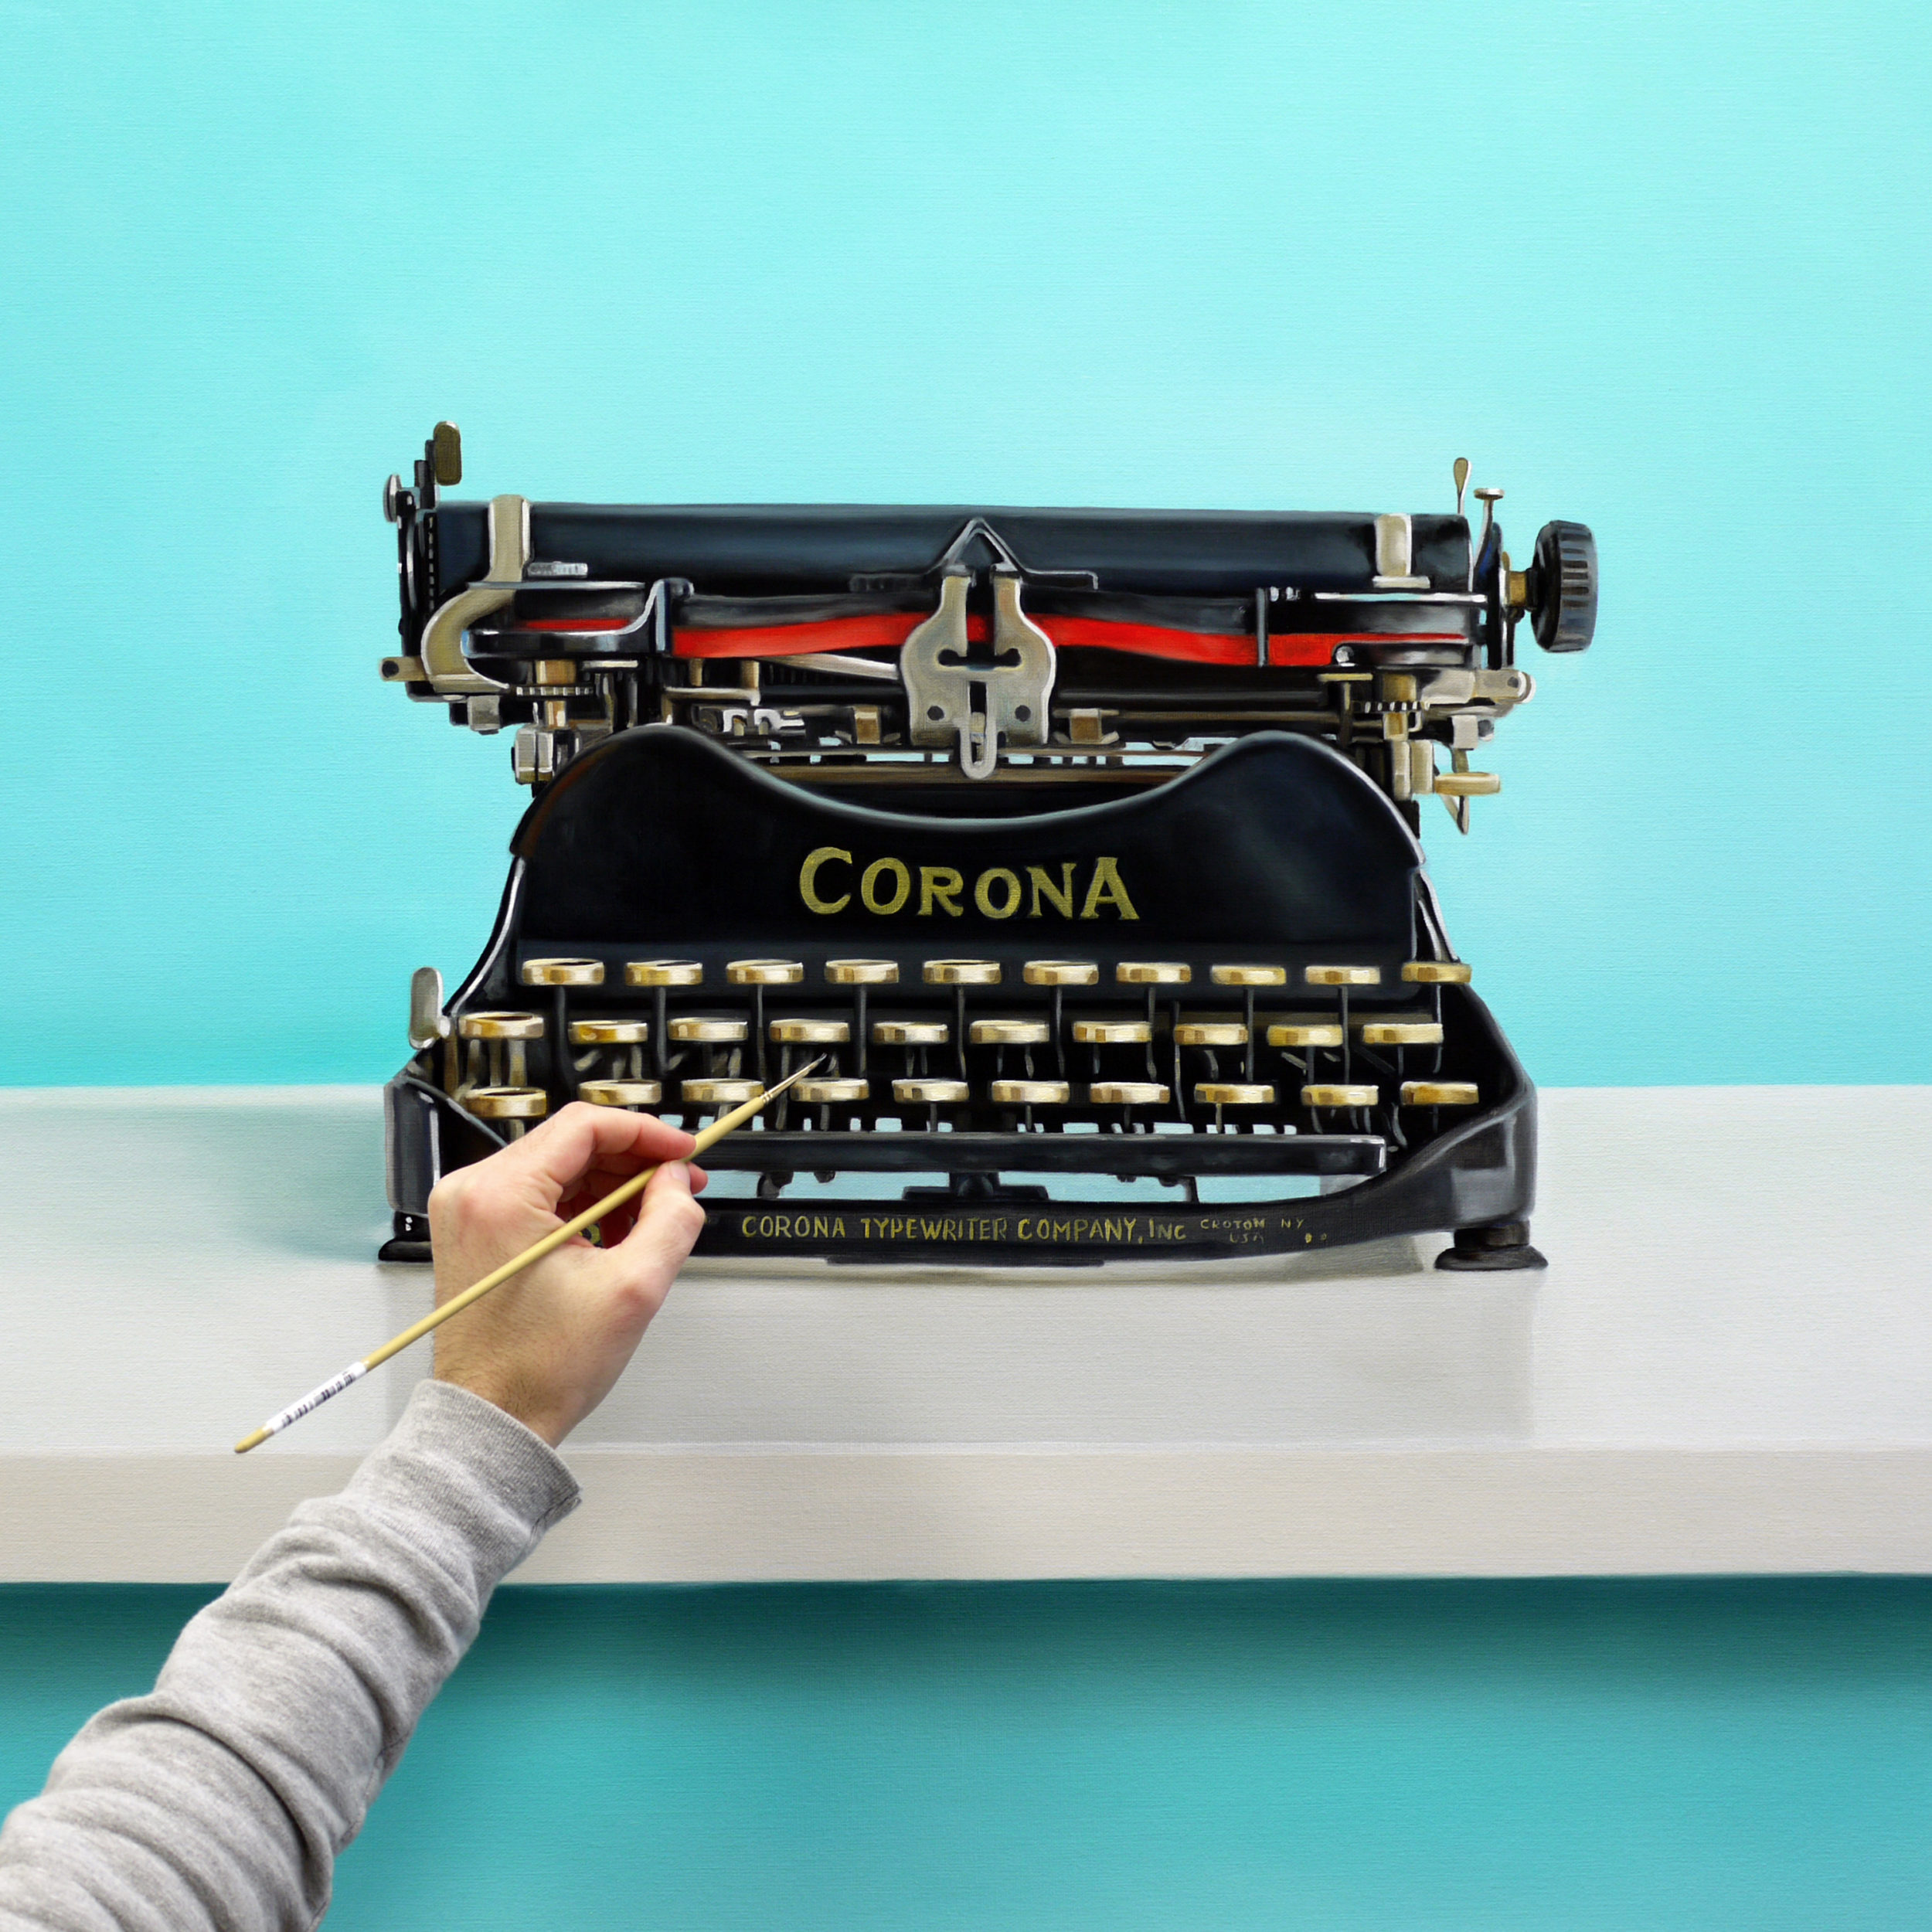 Corona Typewriter Painting Work in Progress by Christopher Stott